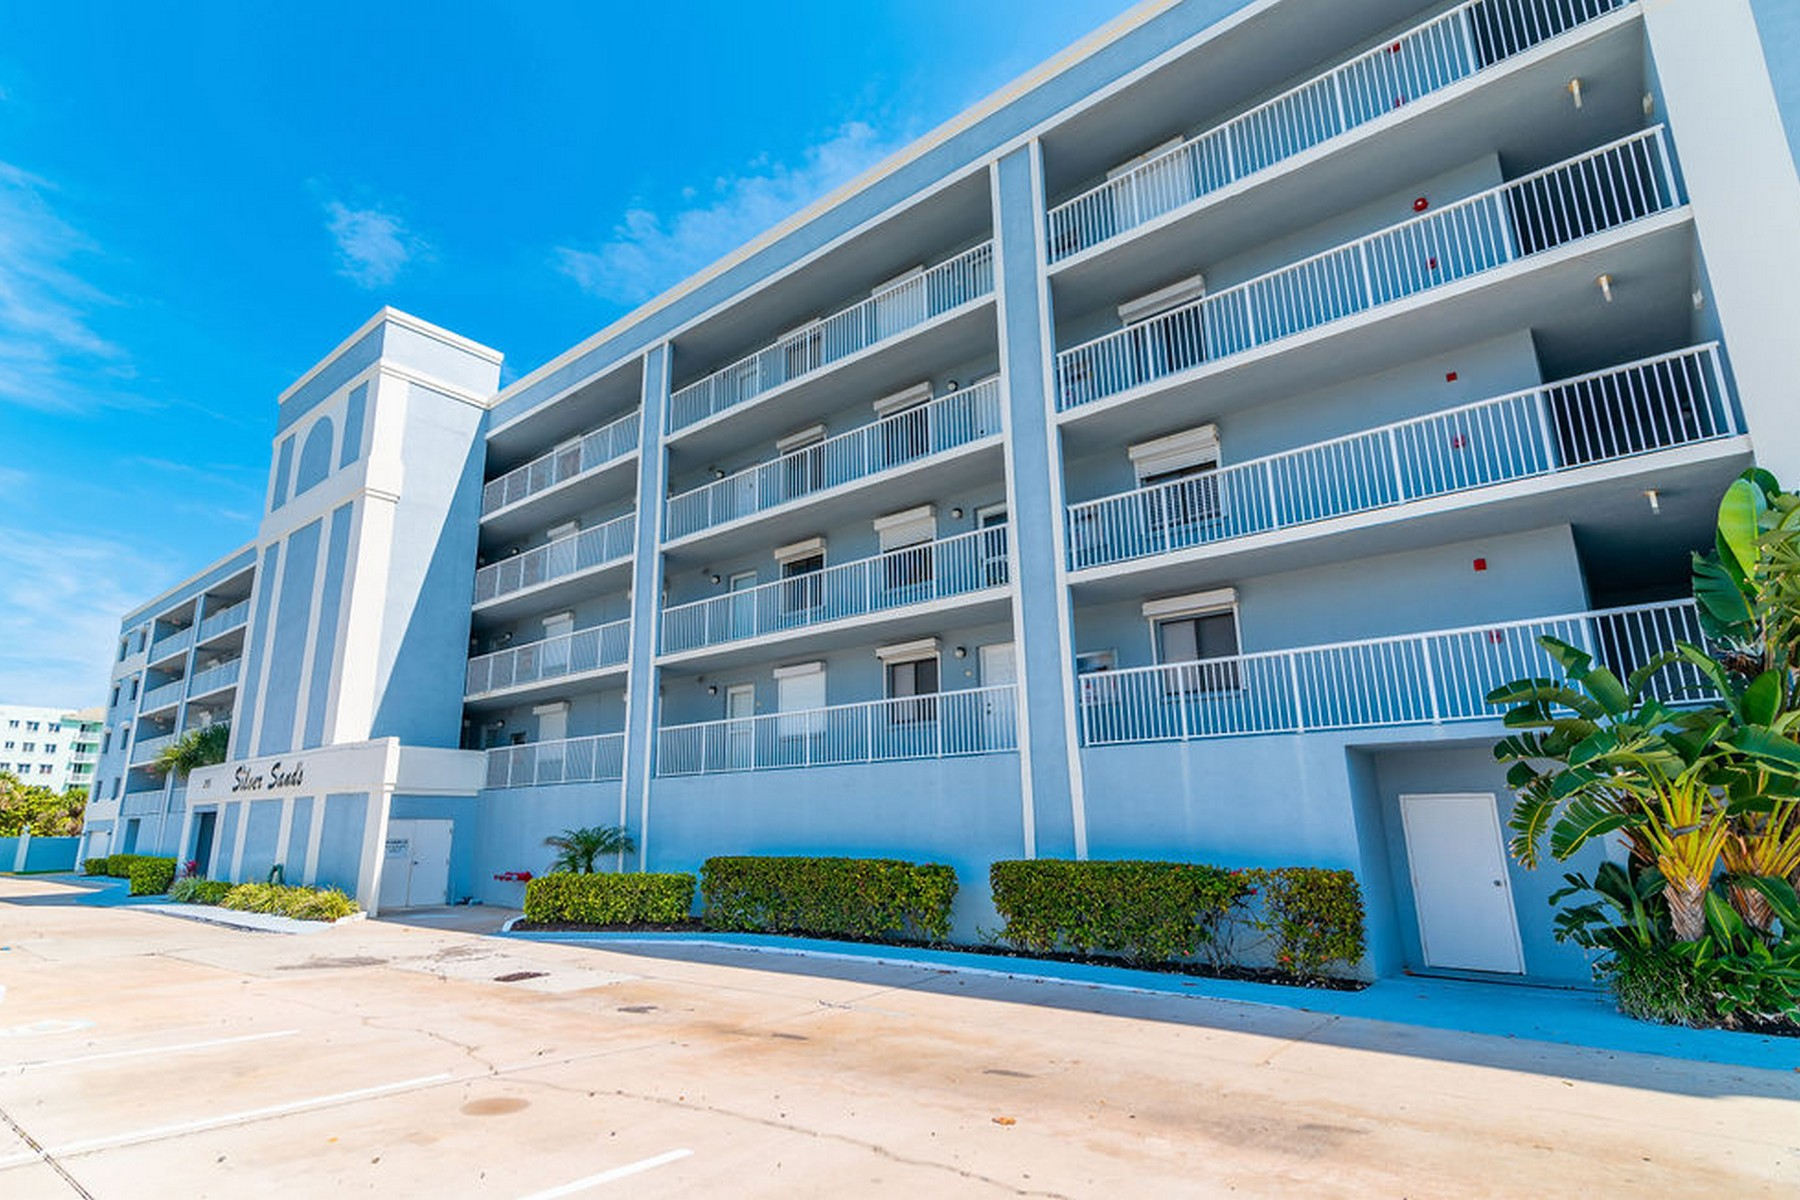 Property для того Продажа на Highly Desirable Corner Unit with Amazing Views of the Beautiful East Coast 295 Highway A1A Unit 208 Satellite Beach, Флорида 32937 Соединенные Штаты